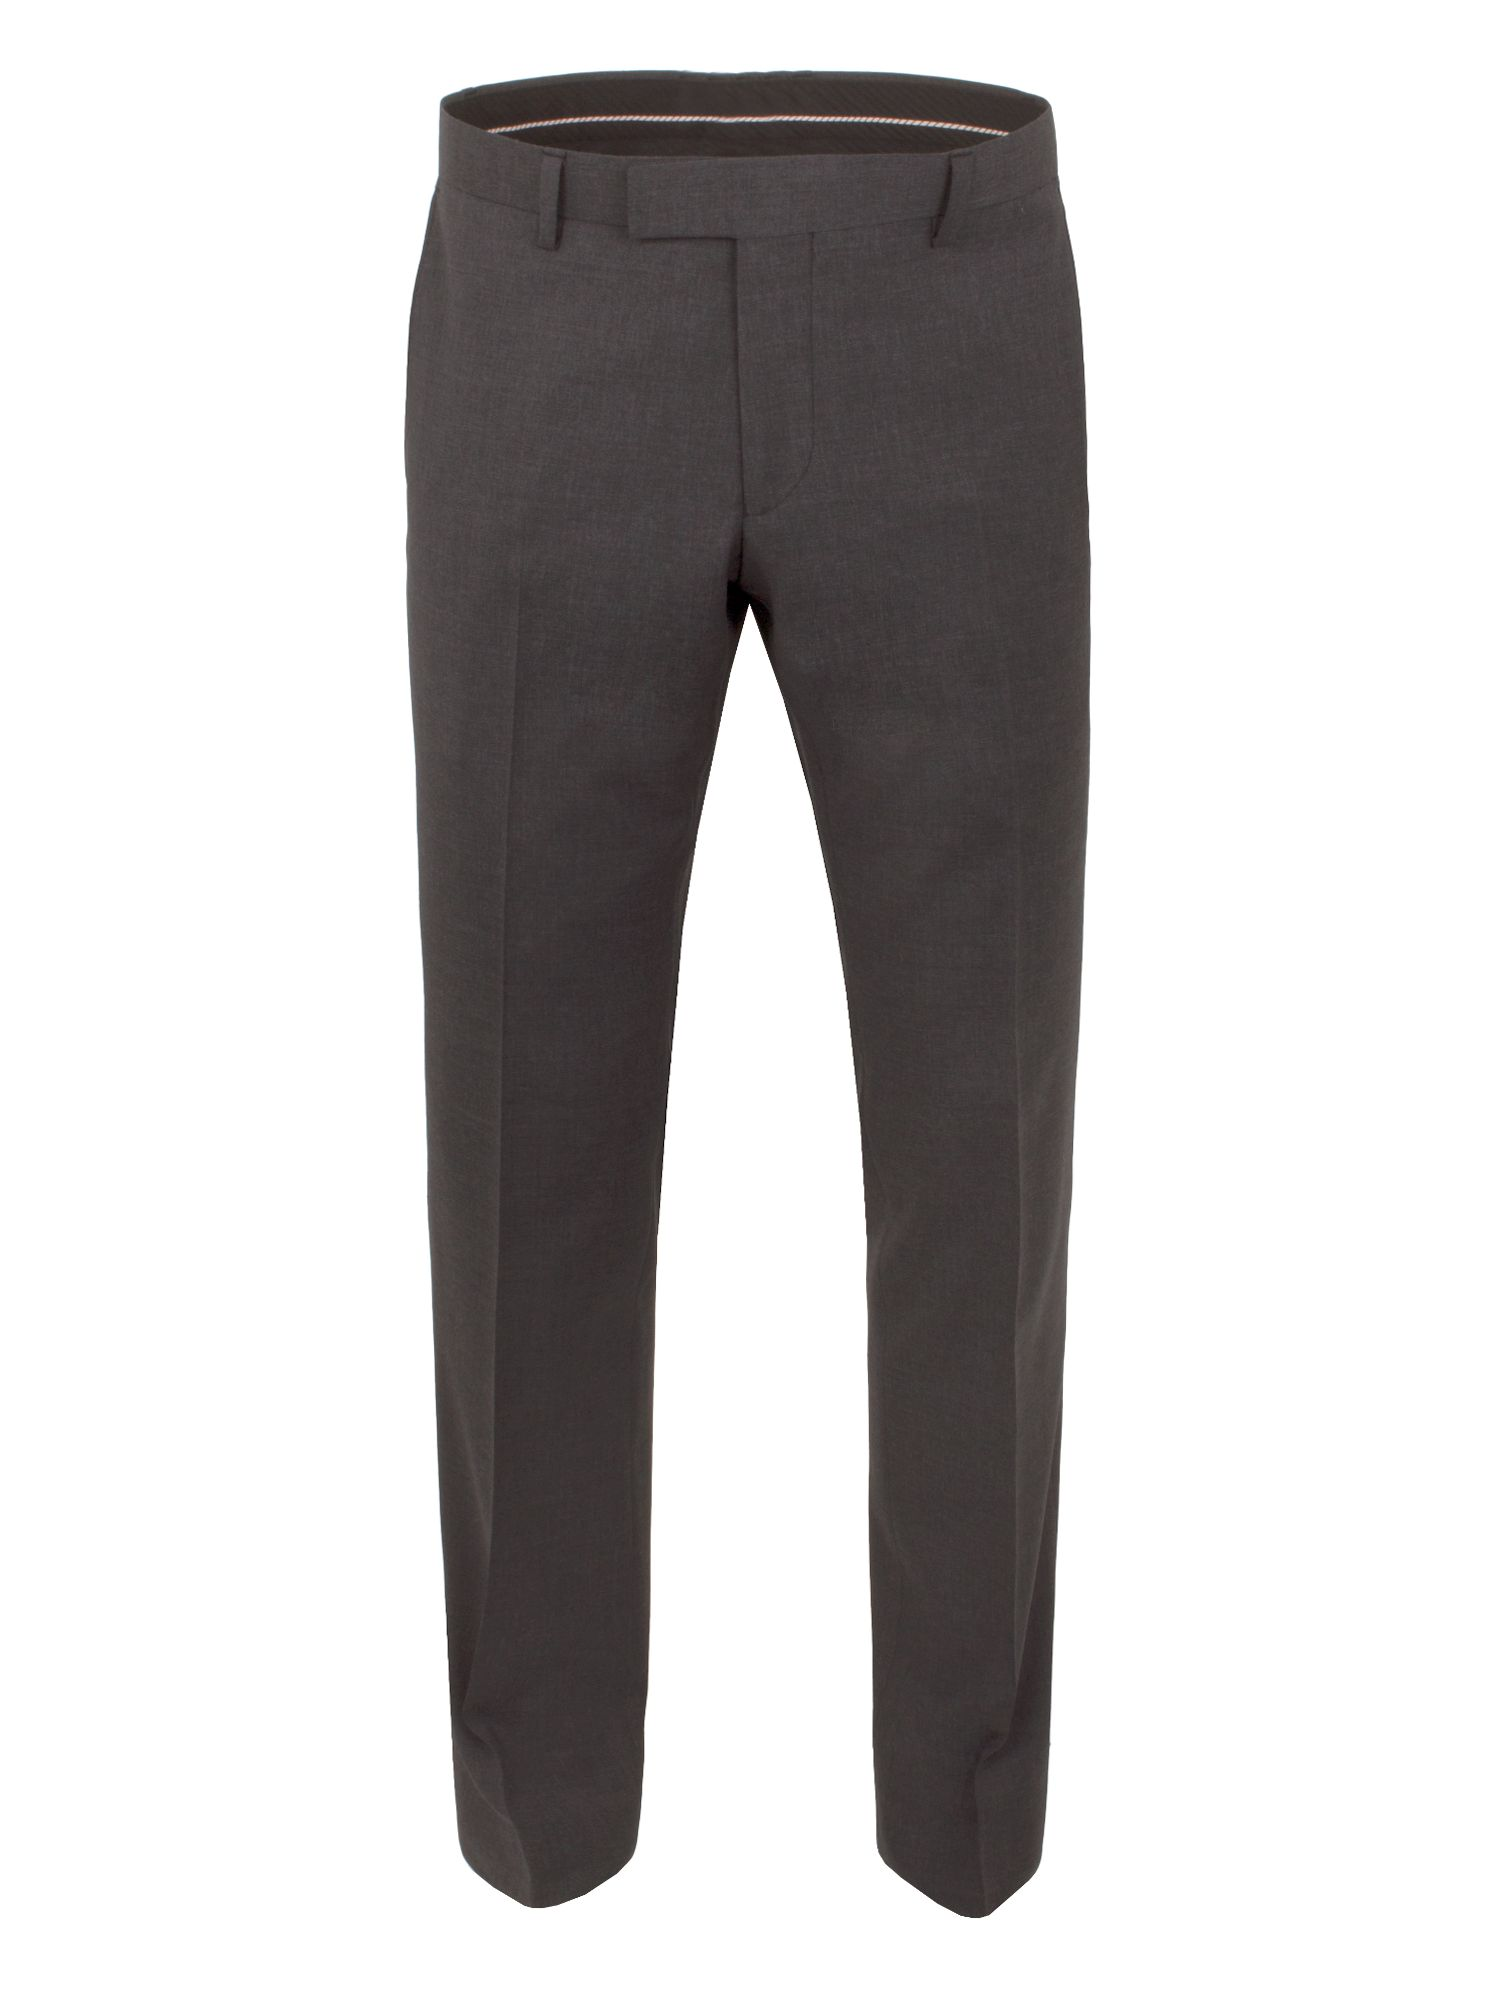 Mens Alexandre of England Markham charcoal panama tailored trouser Charcoal